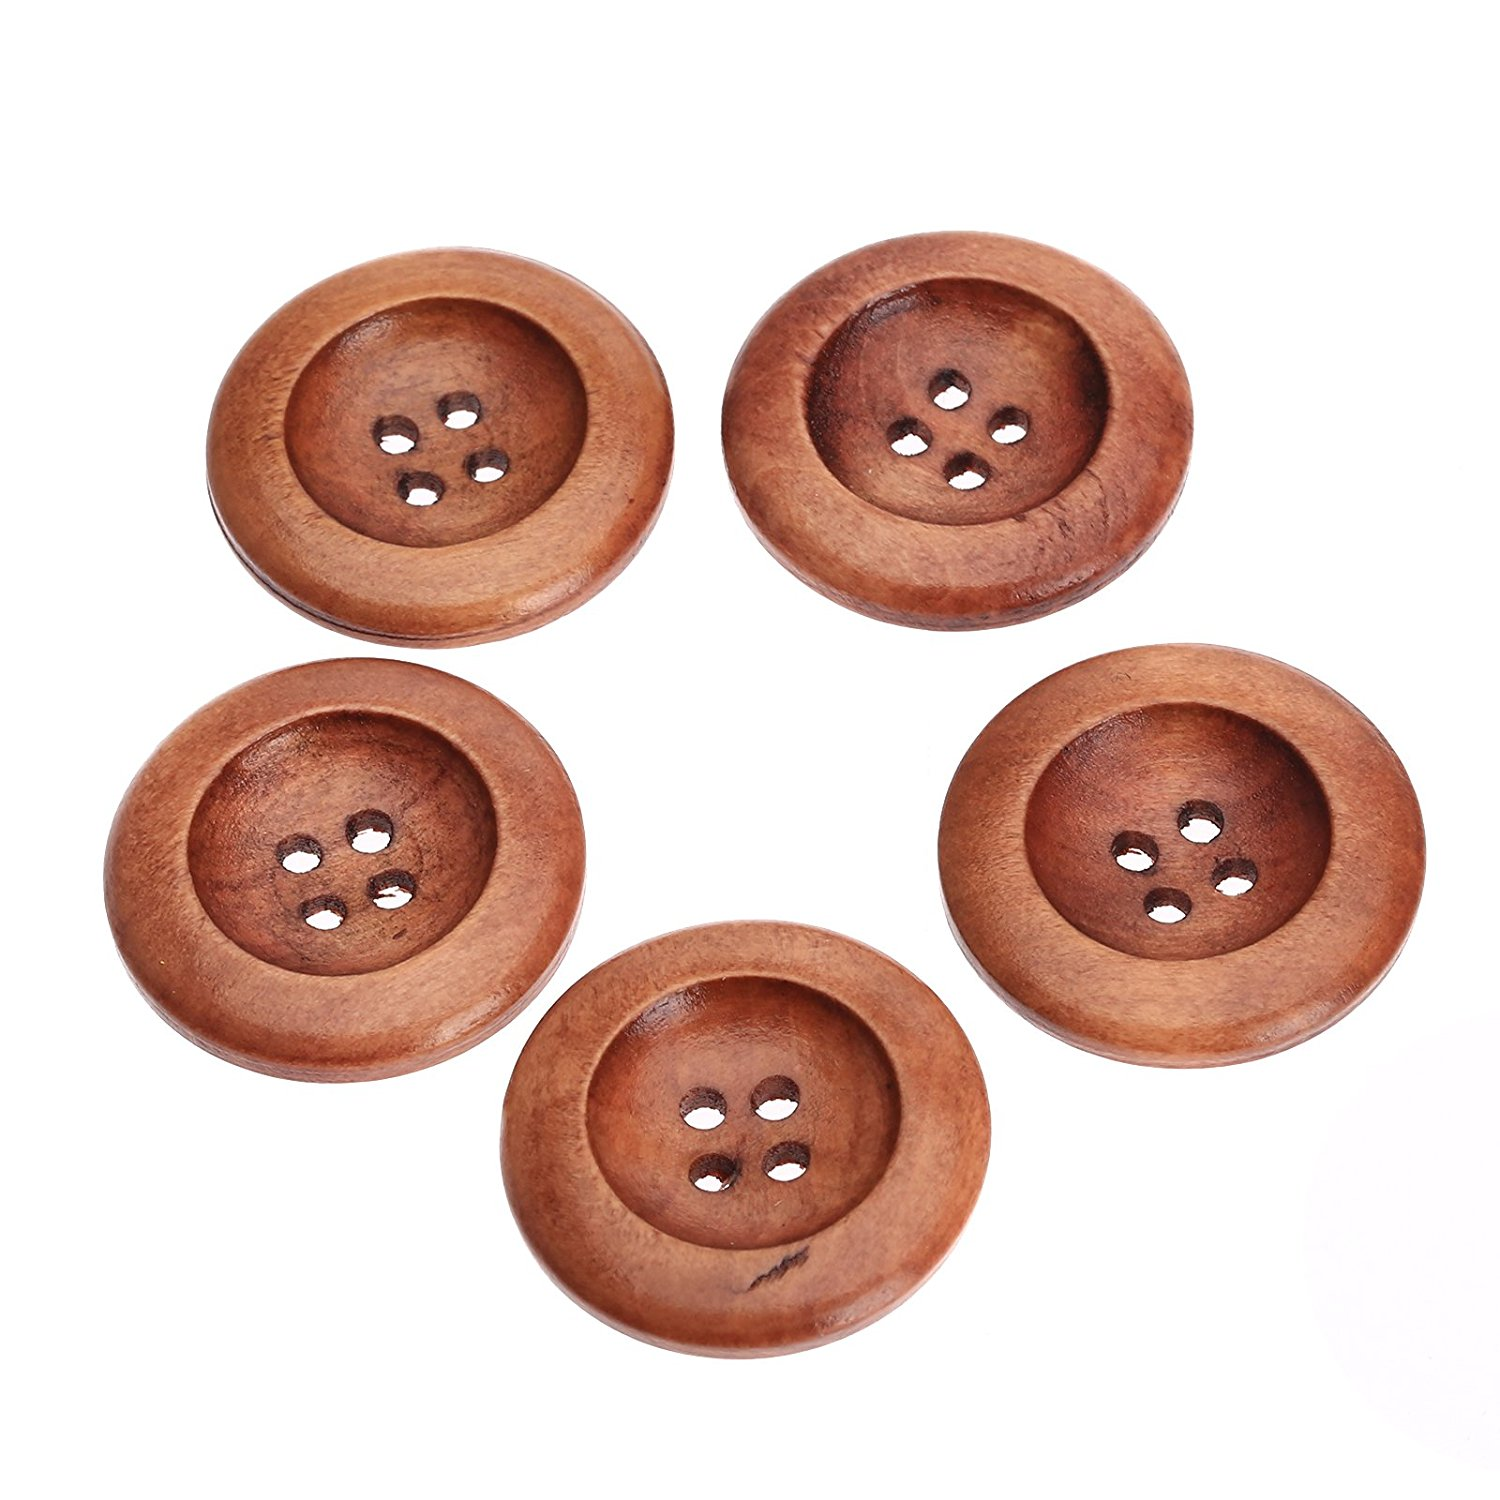 Dophee 50Pcs 25mm 4 Hole Brown Round Wood Button Sewing Scrapbooking ...